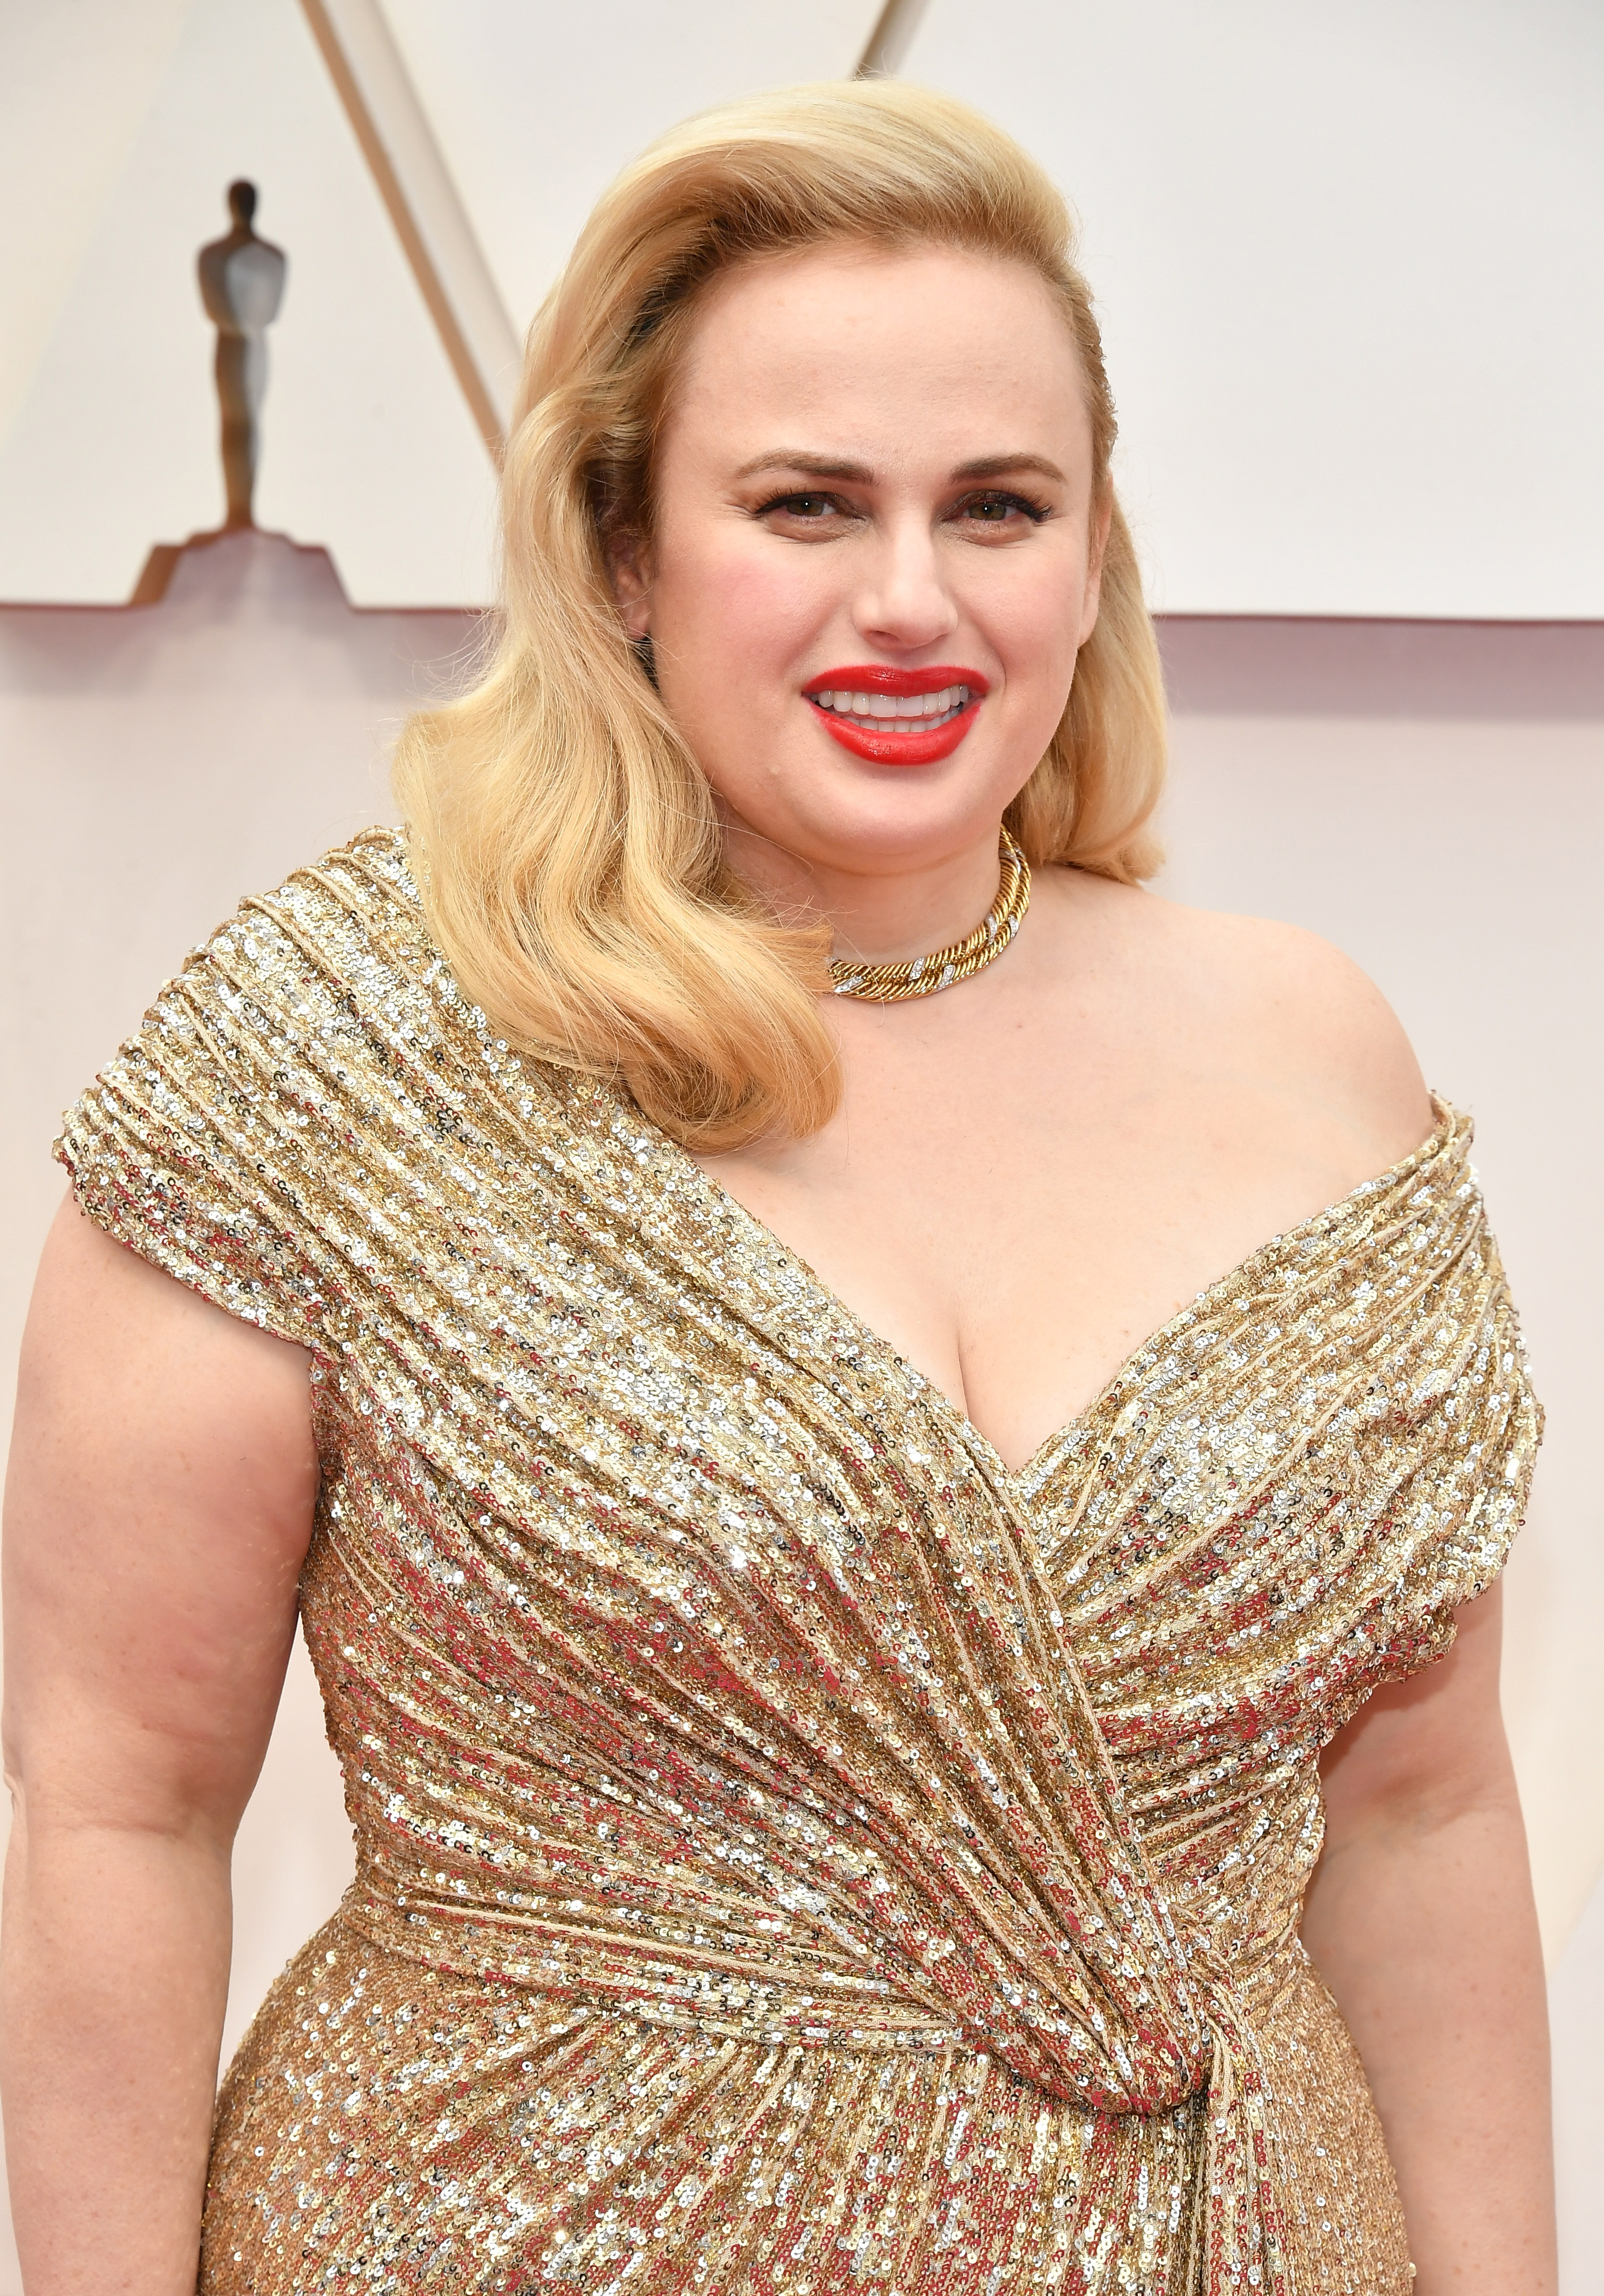 HOLLYWOOD, CALIFORNIA - FEBRUARY 09: Rebel Wilson attends the 92nd Annual Academy Awards at Hollywood and Highland on February 09, 2020 in Hollywood, California. (Photo by Amy Sussman/Getty Images)